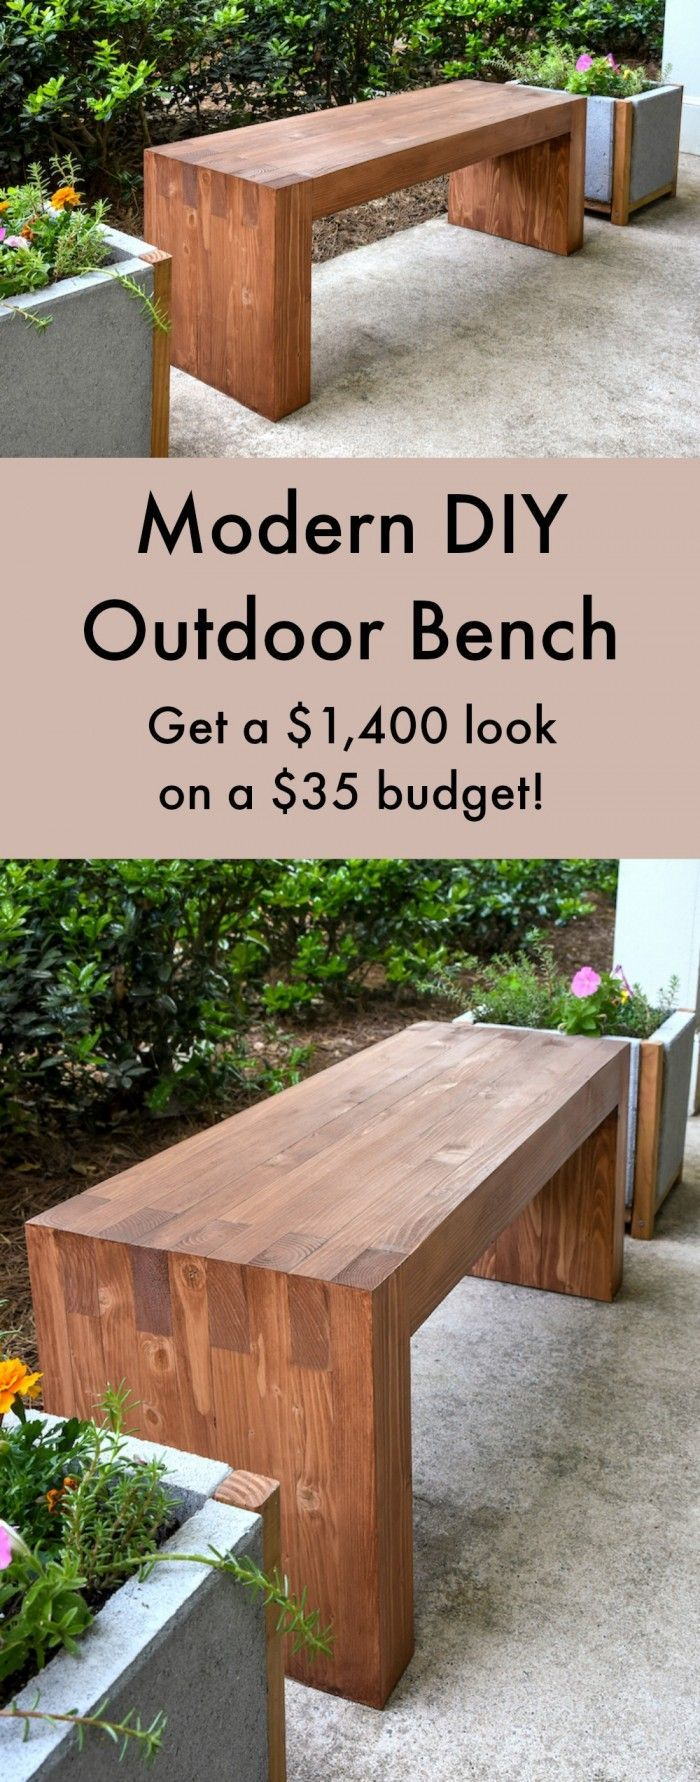 best 25 diy outdoor furniture ideas on pinterest patio diy furniture diy patio and diy patio. Black Bedroom Furniture Sets. Home Design Ideas